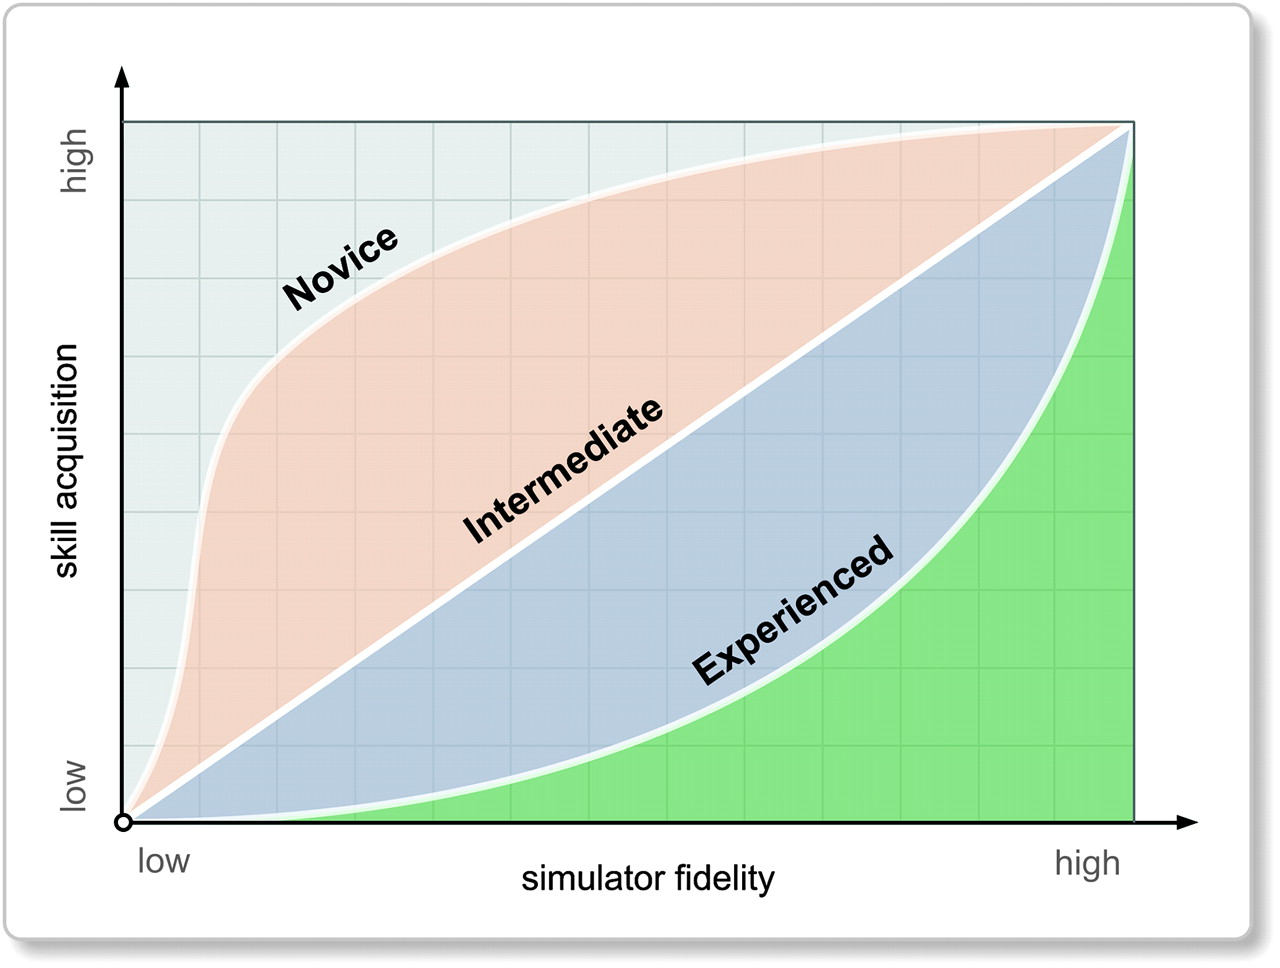 Training and simulation for patient safety | BMJ Quality